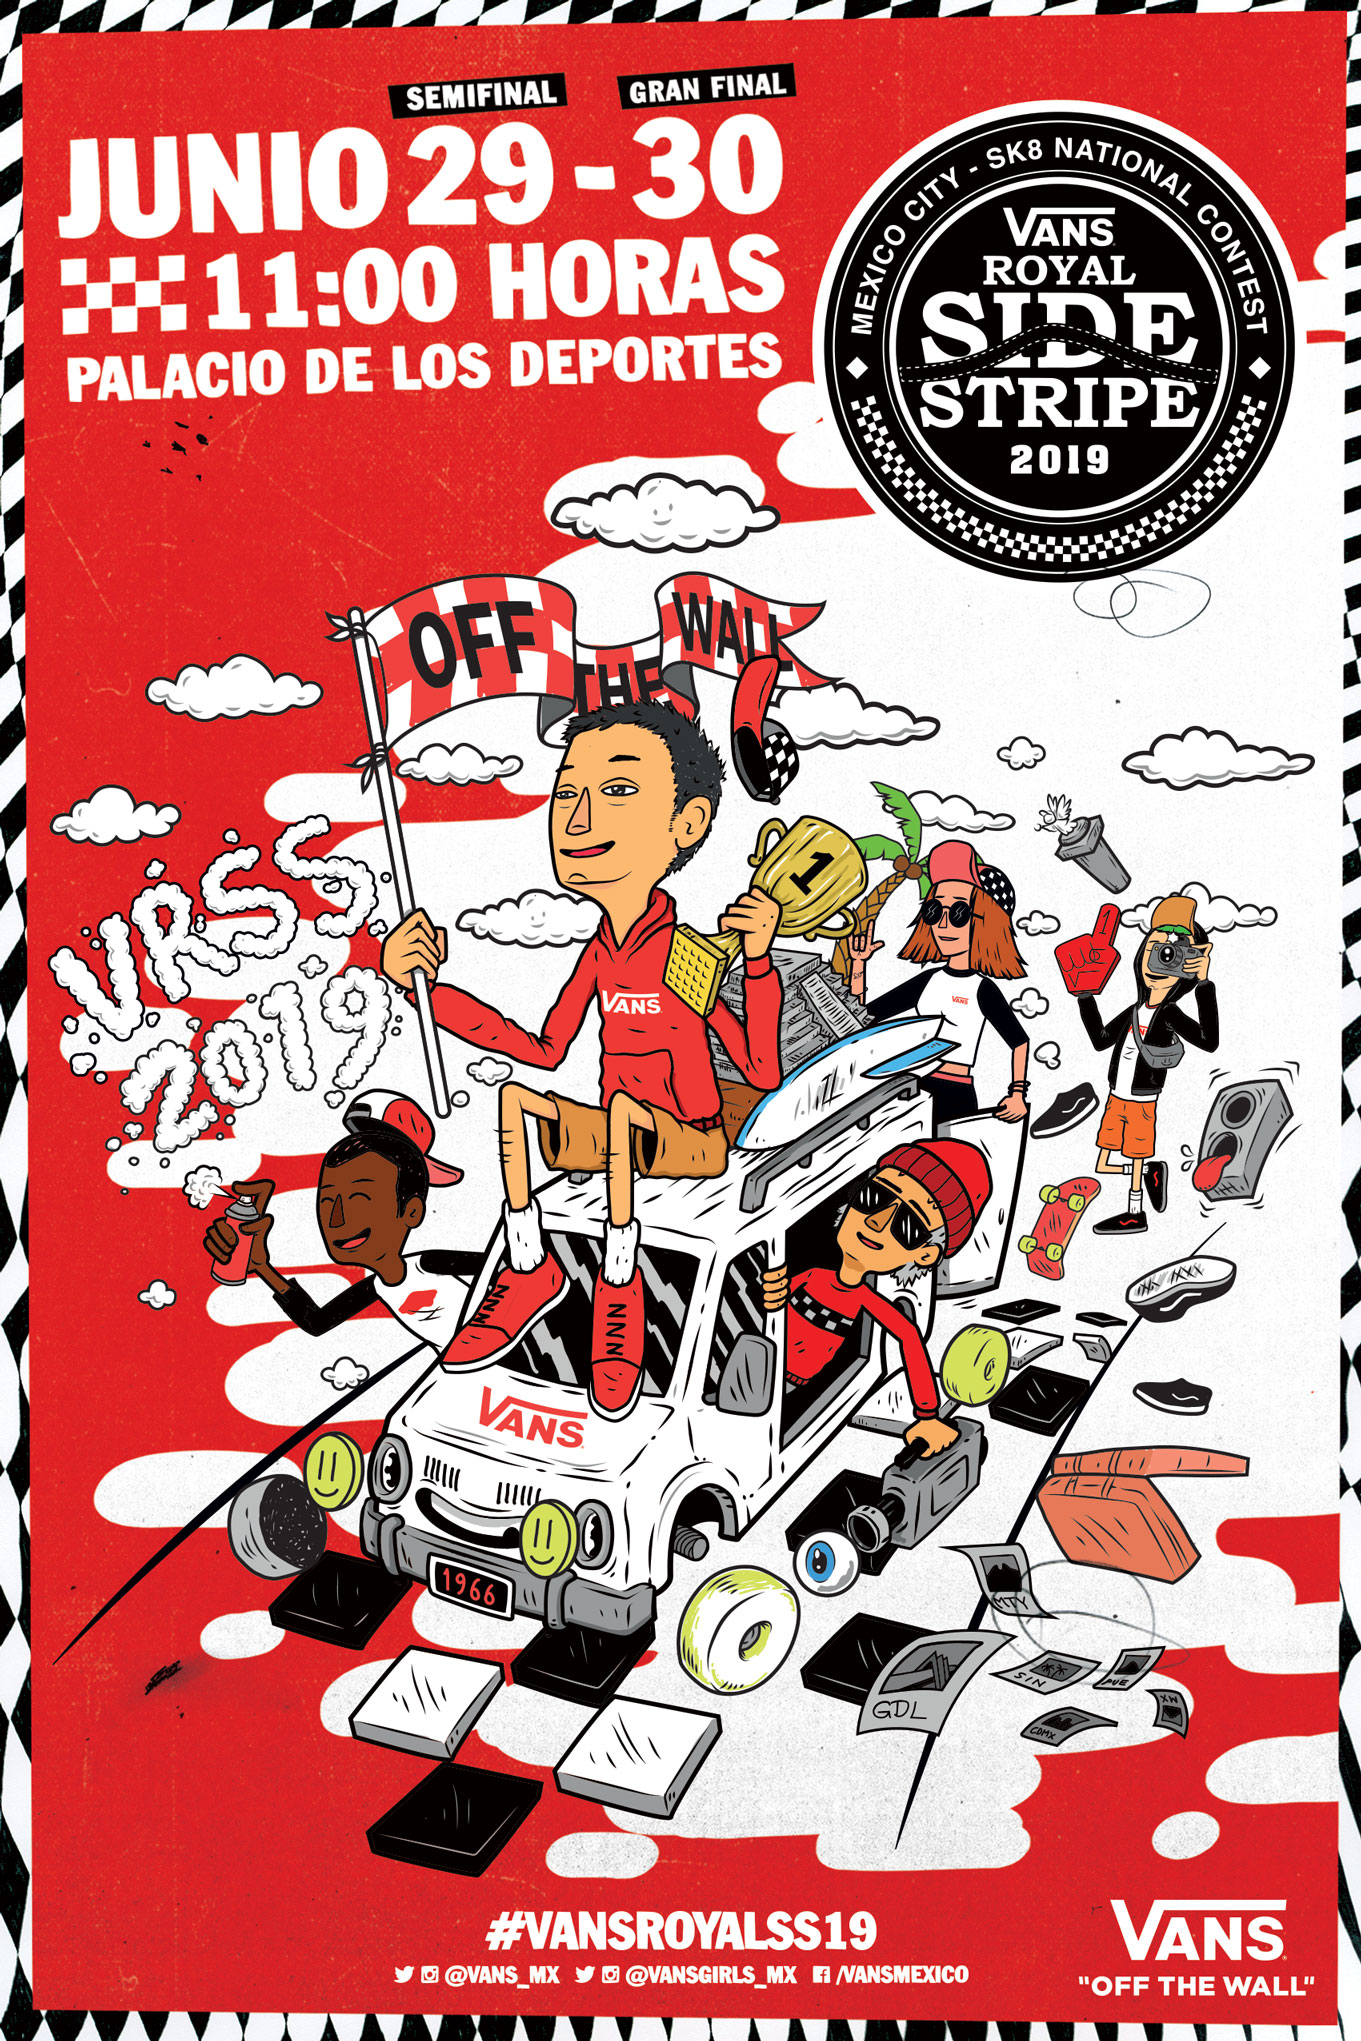 Final del Vans Royal Side Stripe 2019